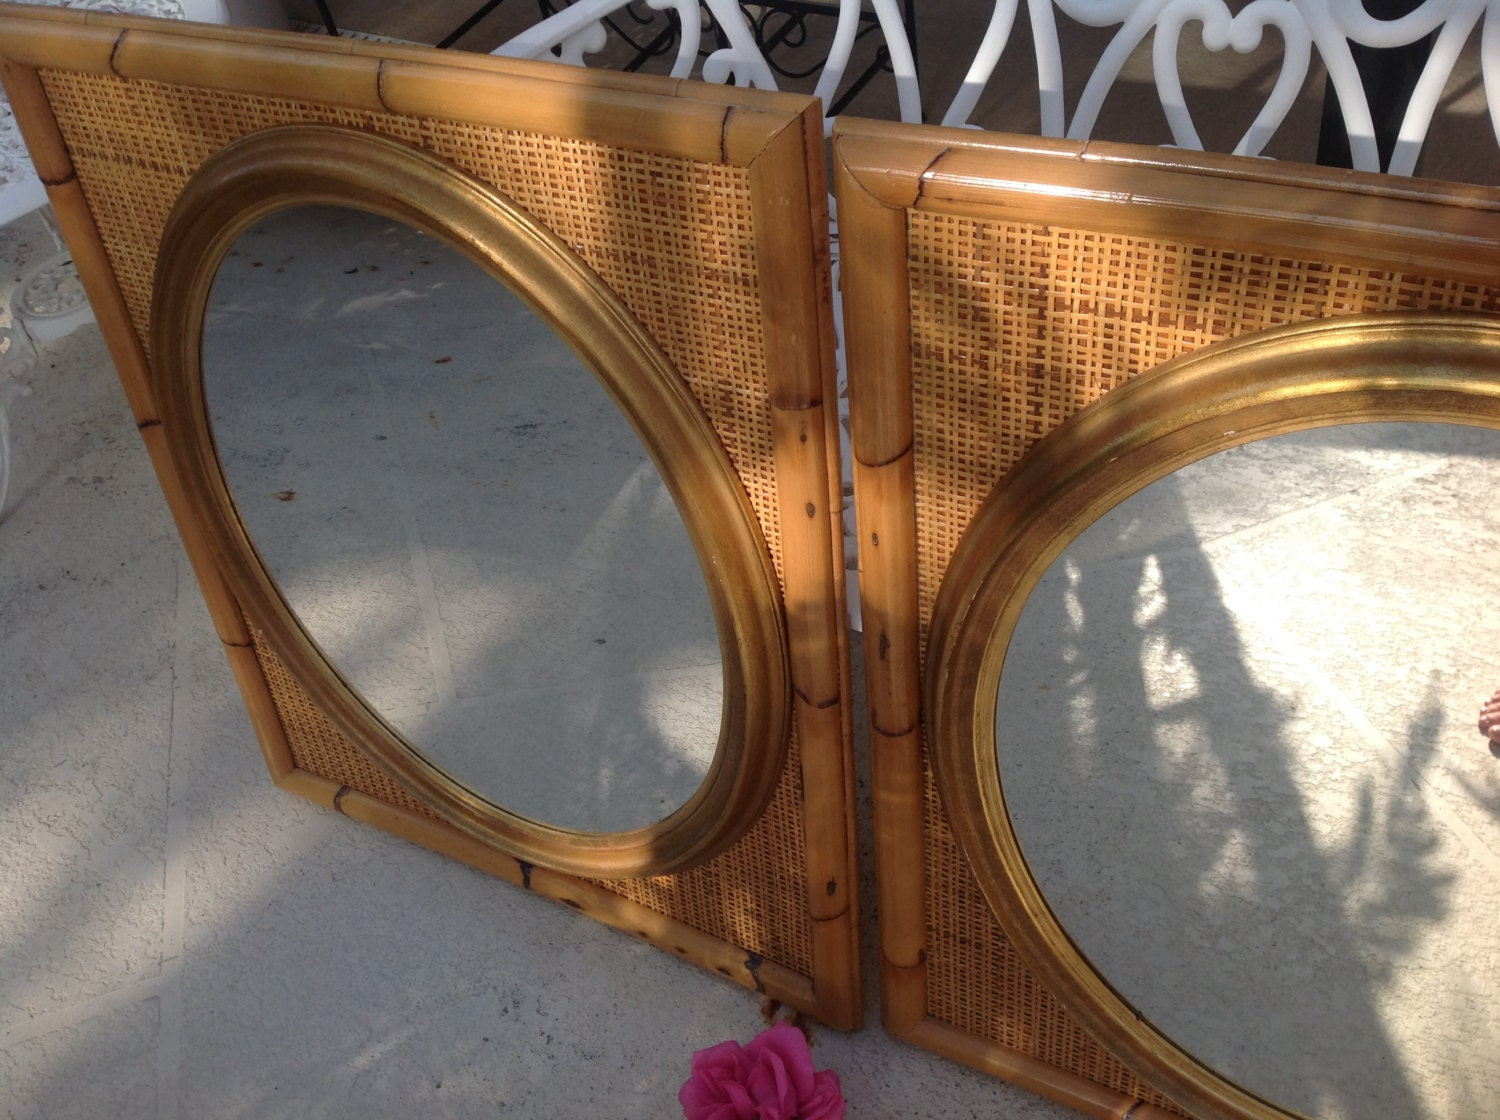 Bamboo Rattan Mirrors Pair Of Rattan Mirrors 32 Tall